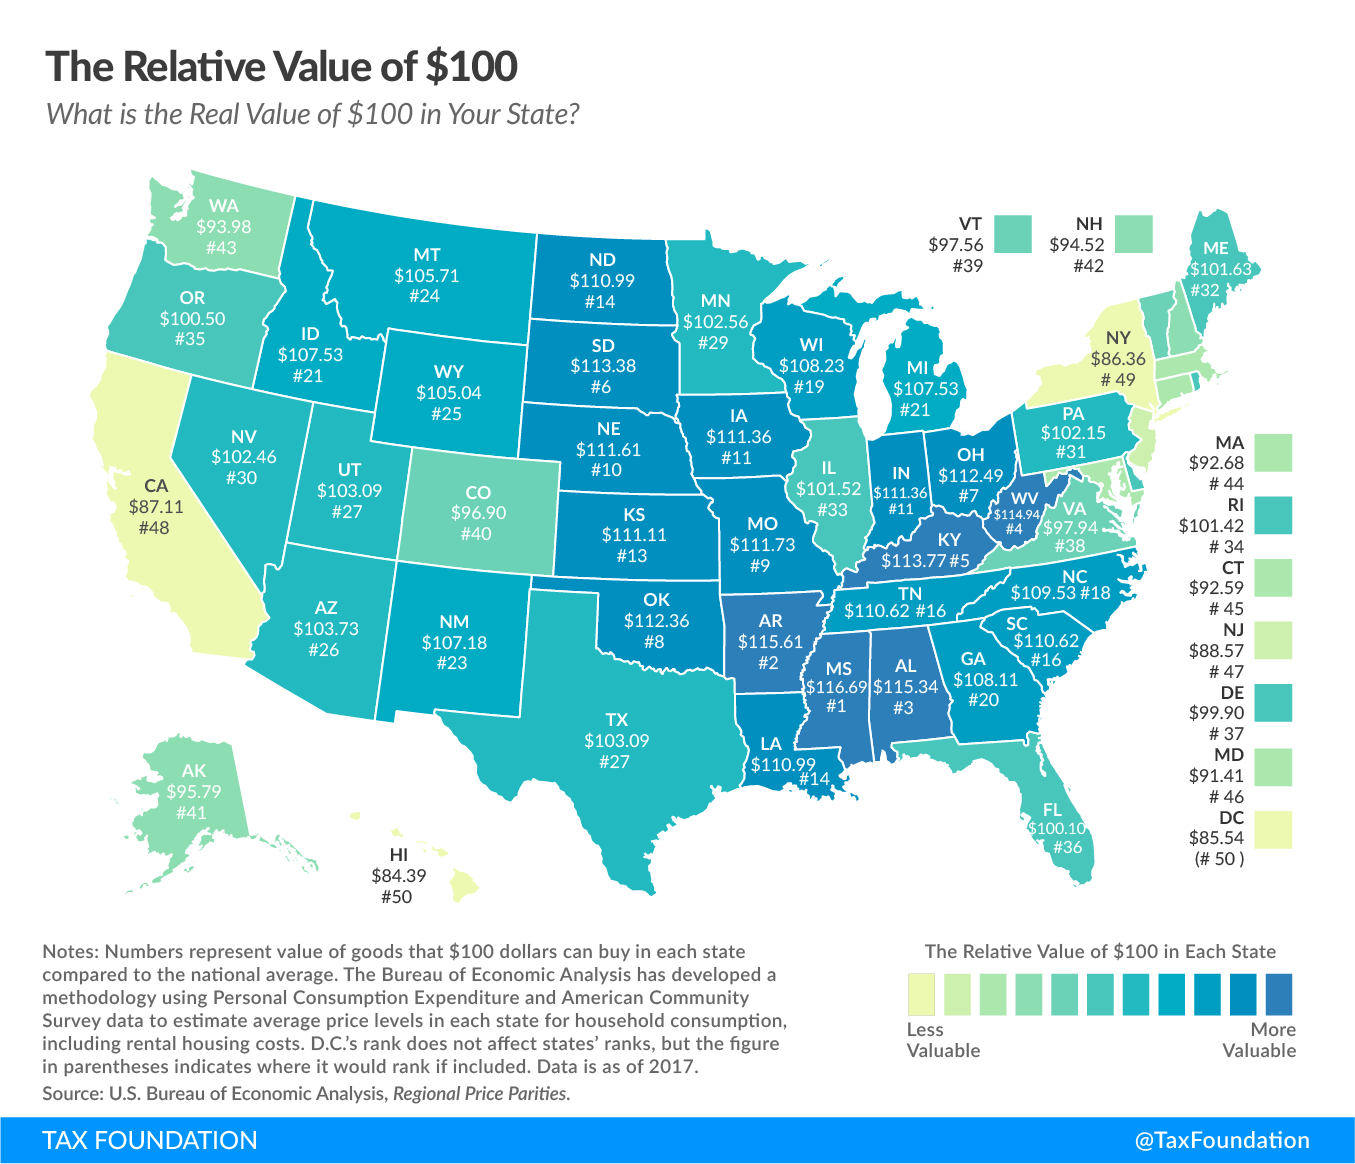 Relative value of $100 in your state 2019 purchasing power 2019 price parity map, biggest bang for your buck states 2019 biggest bang for your buck states, price parity map, purchasing power, real income, nominal income, time value of money, best value states